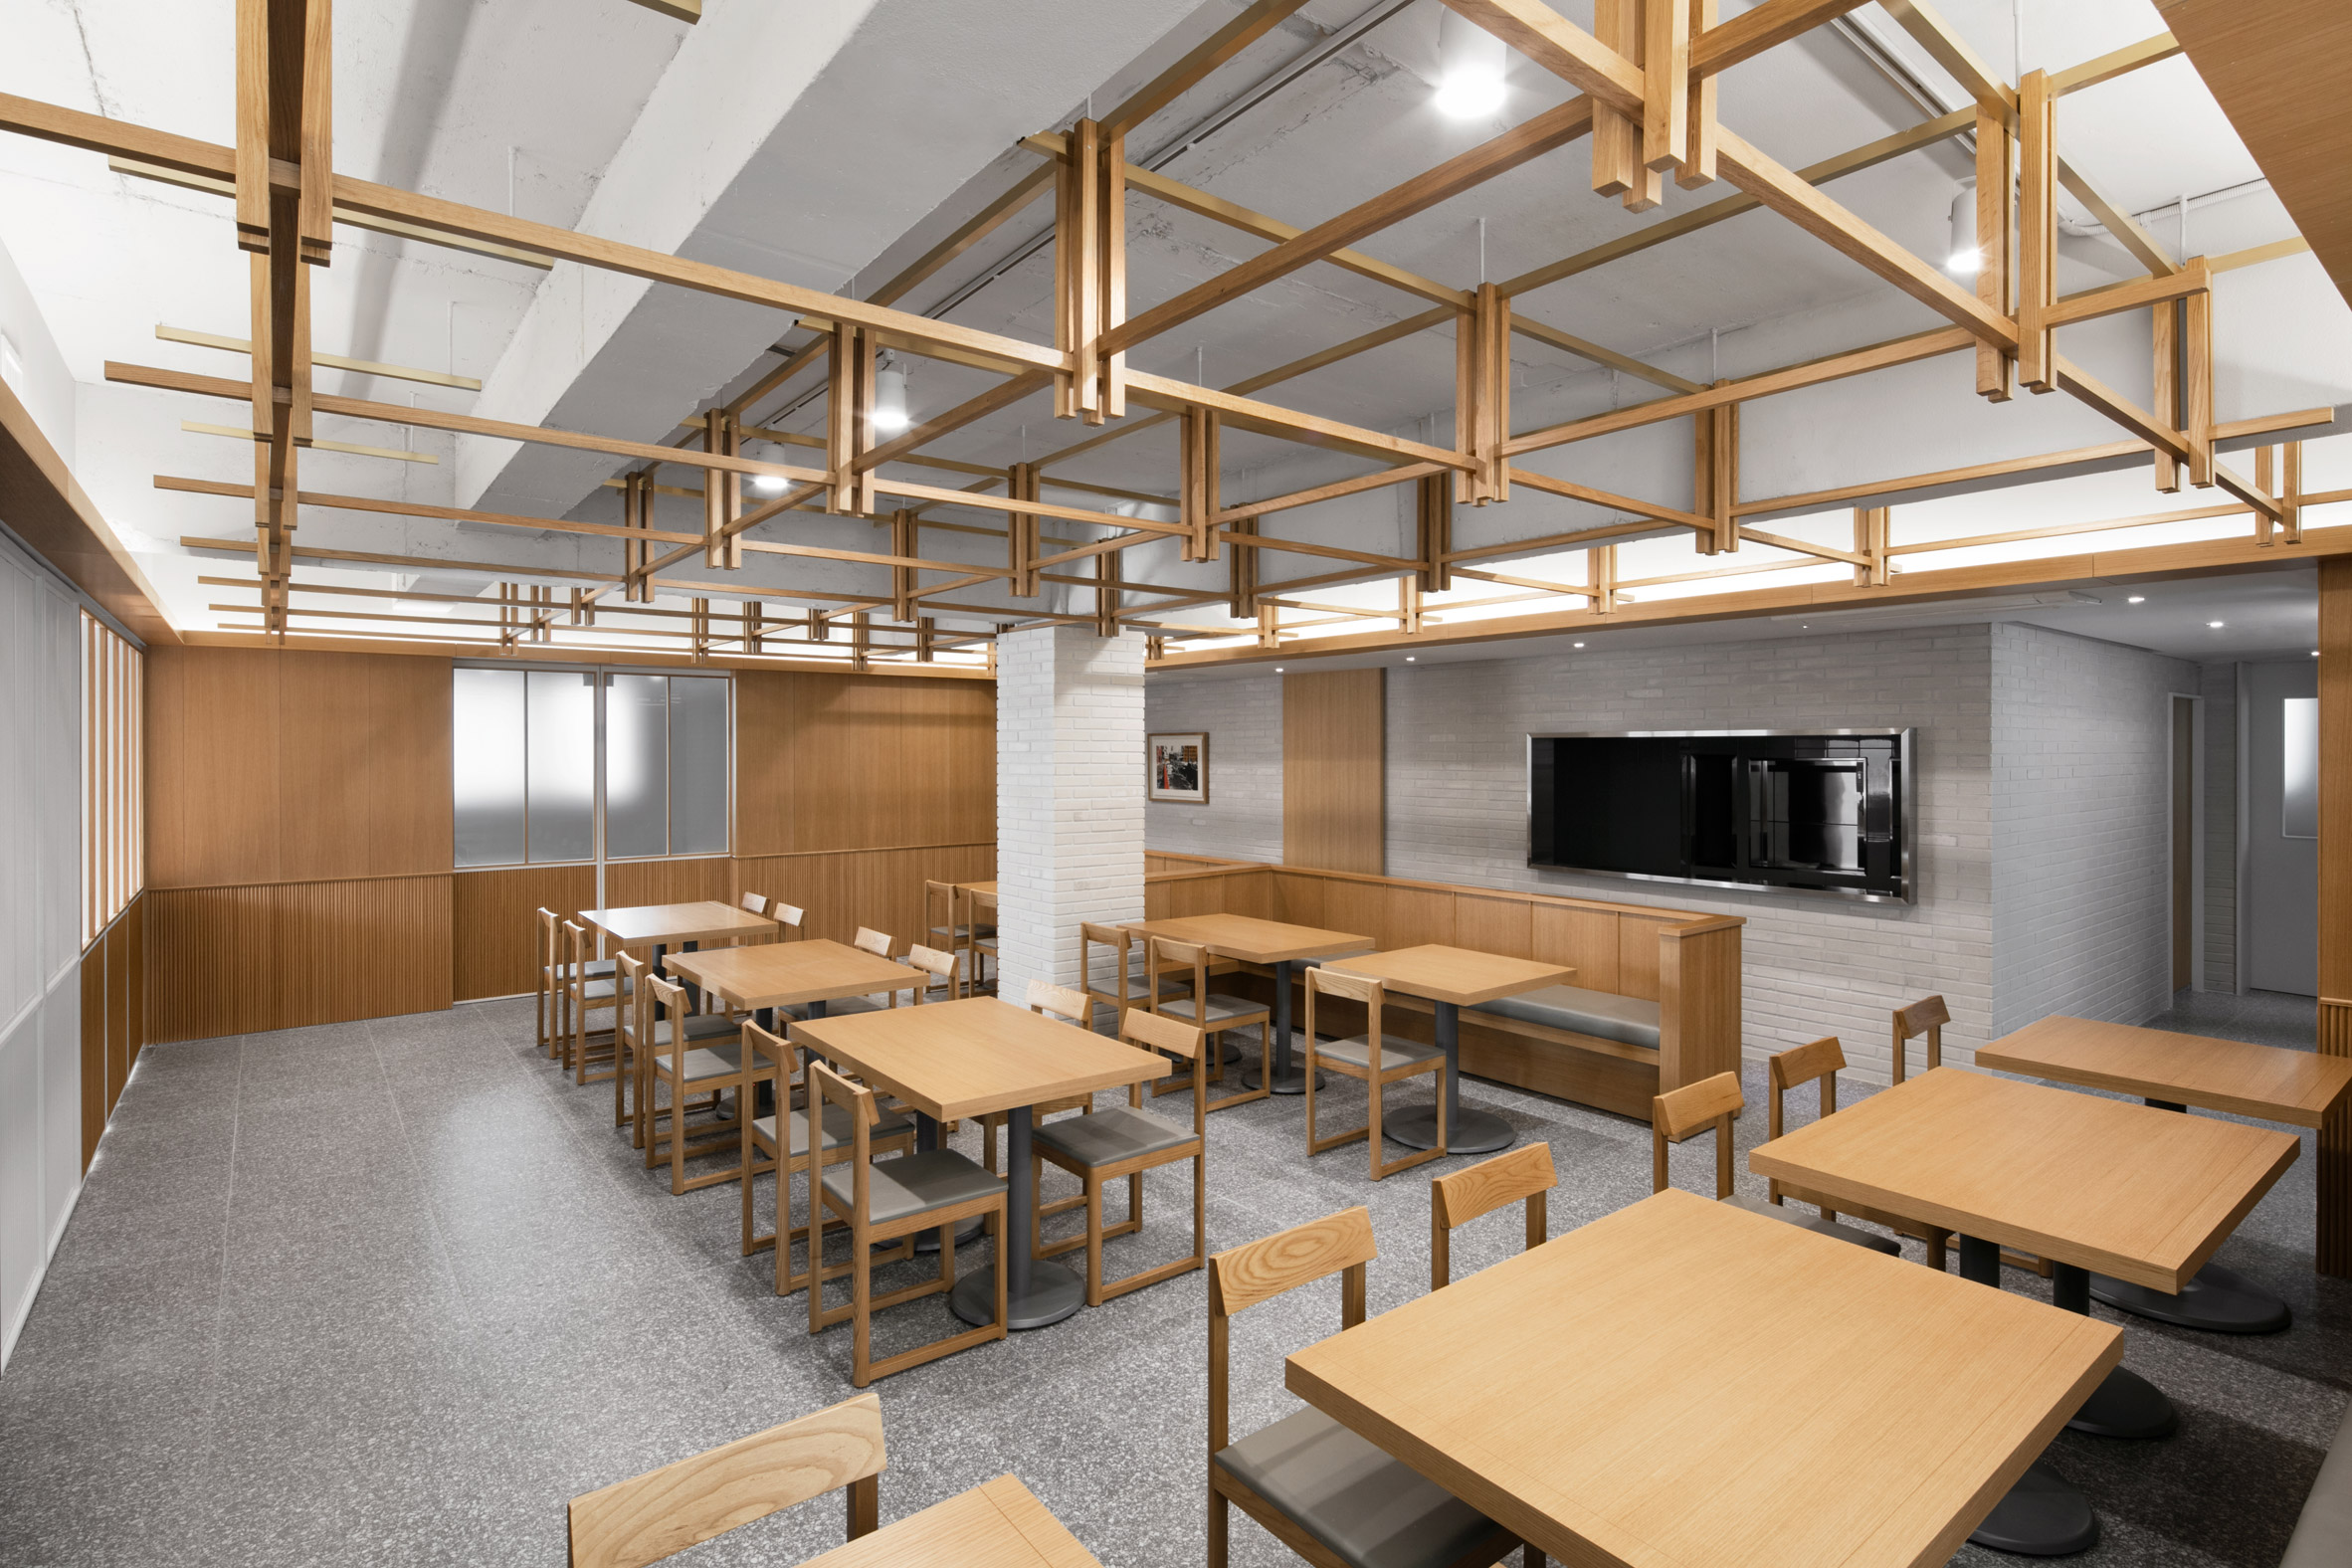 Seoul restaurant panelled with wood in ode to former owner's love of oak trees